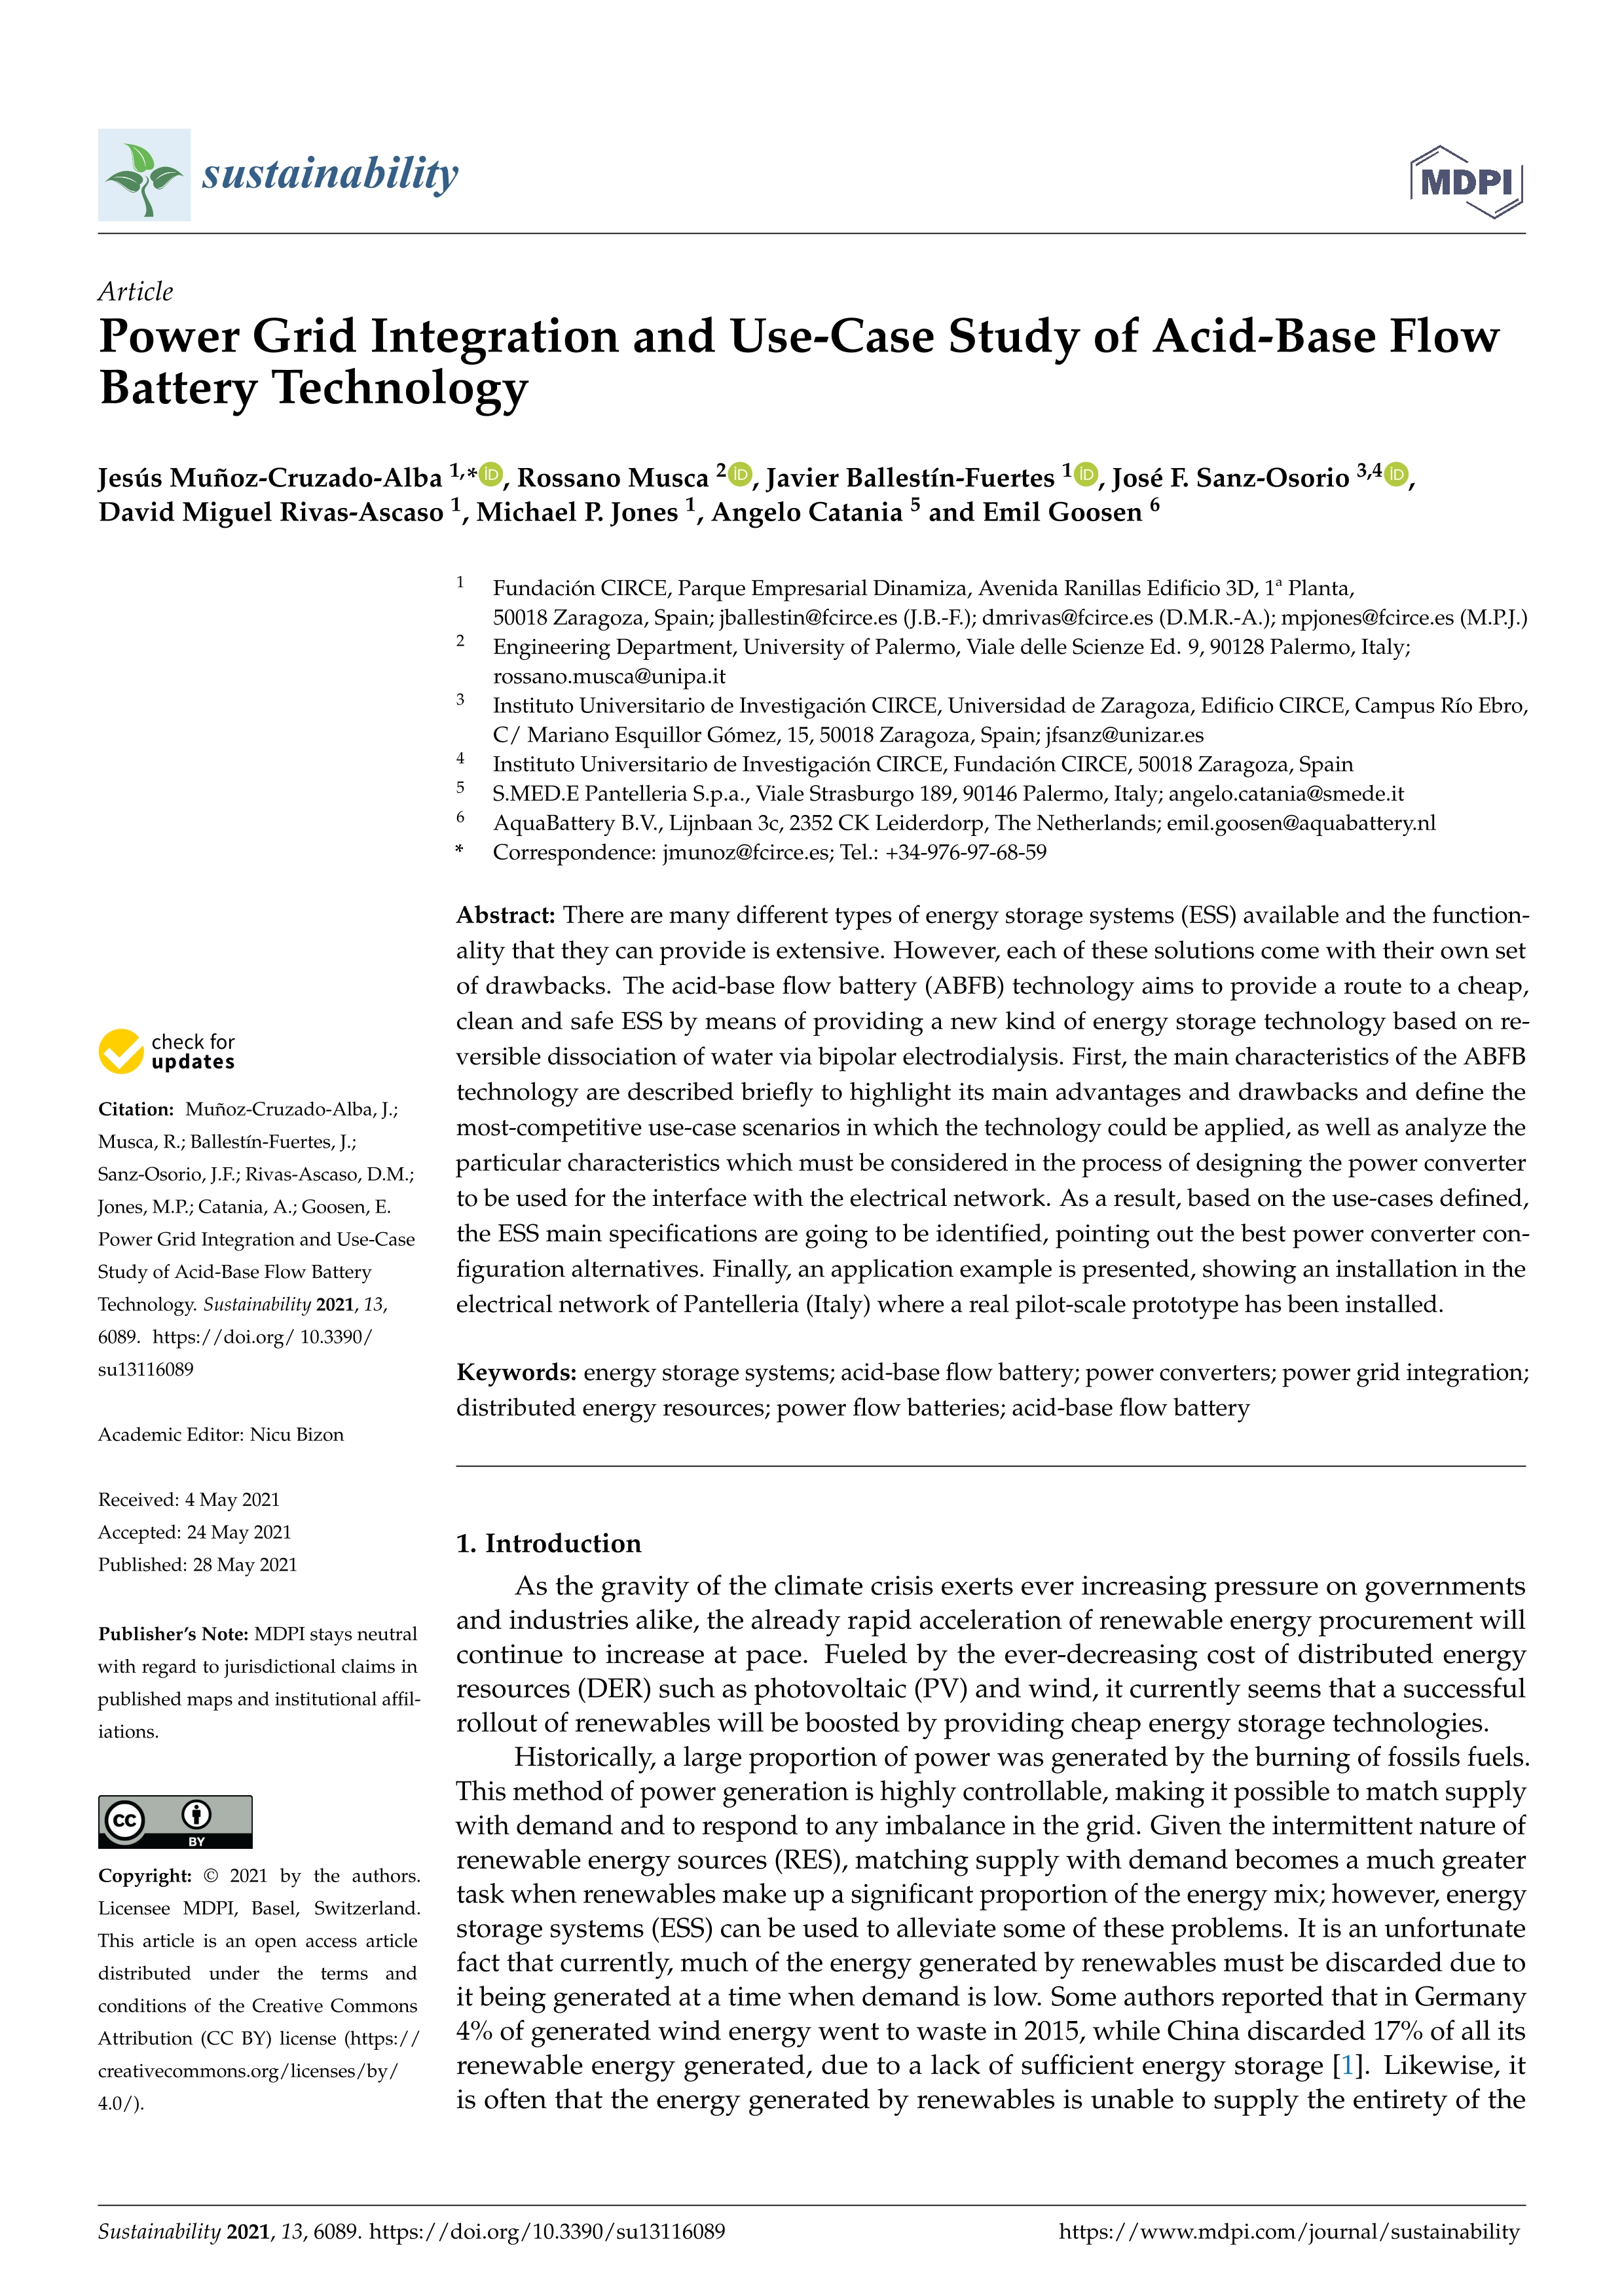 Power grid integration and use-case study of acid-base flow battery technology